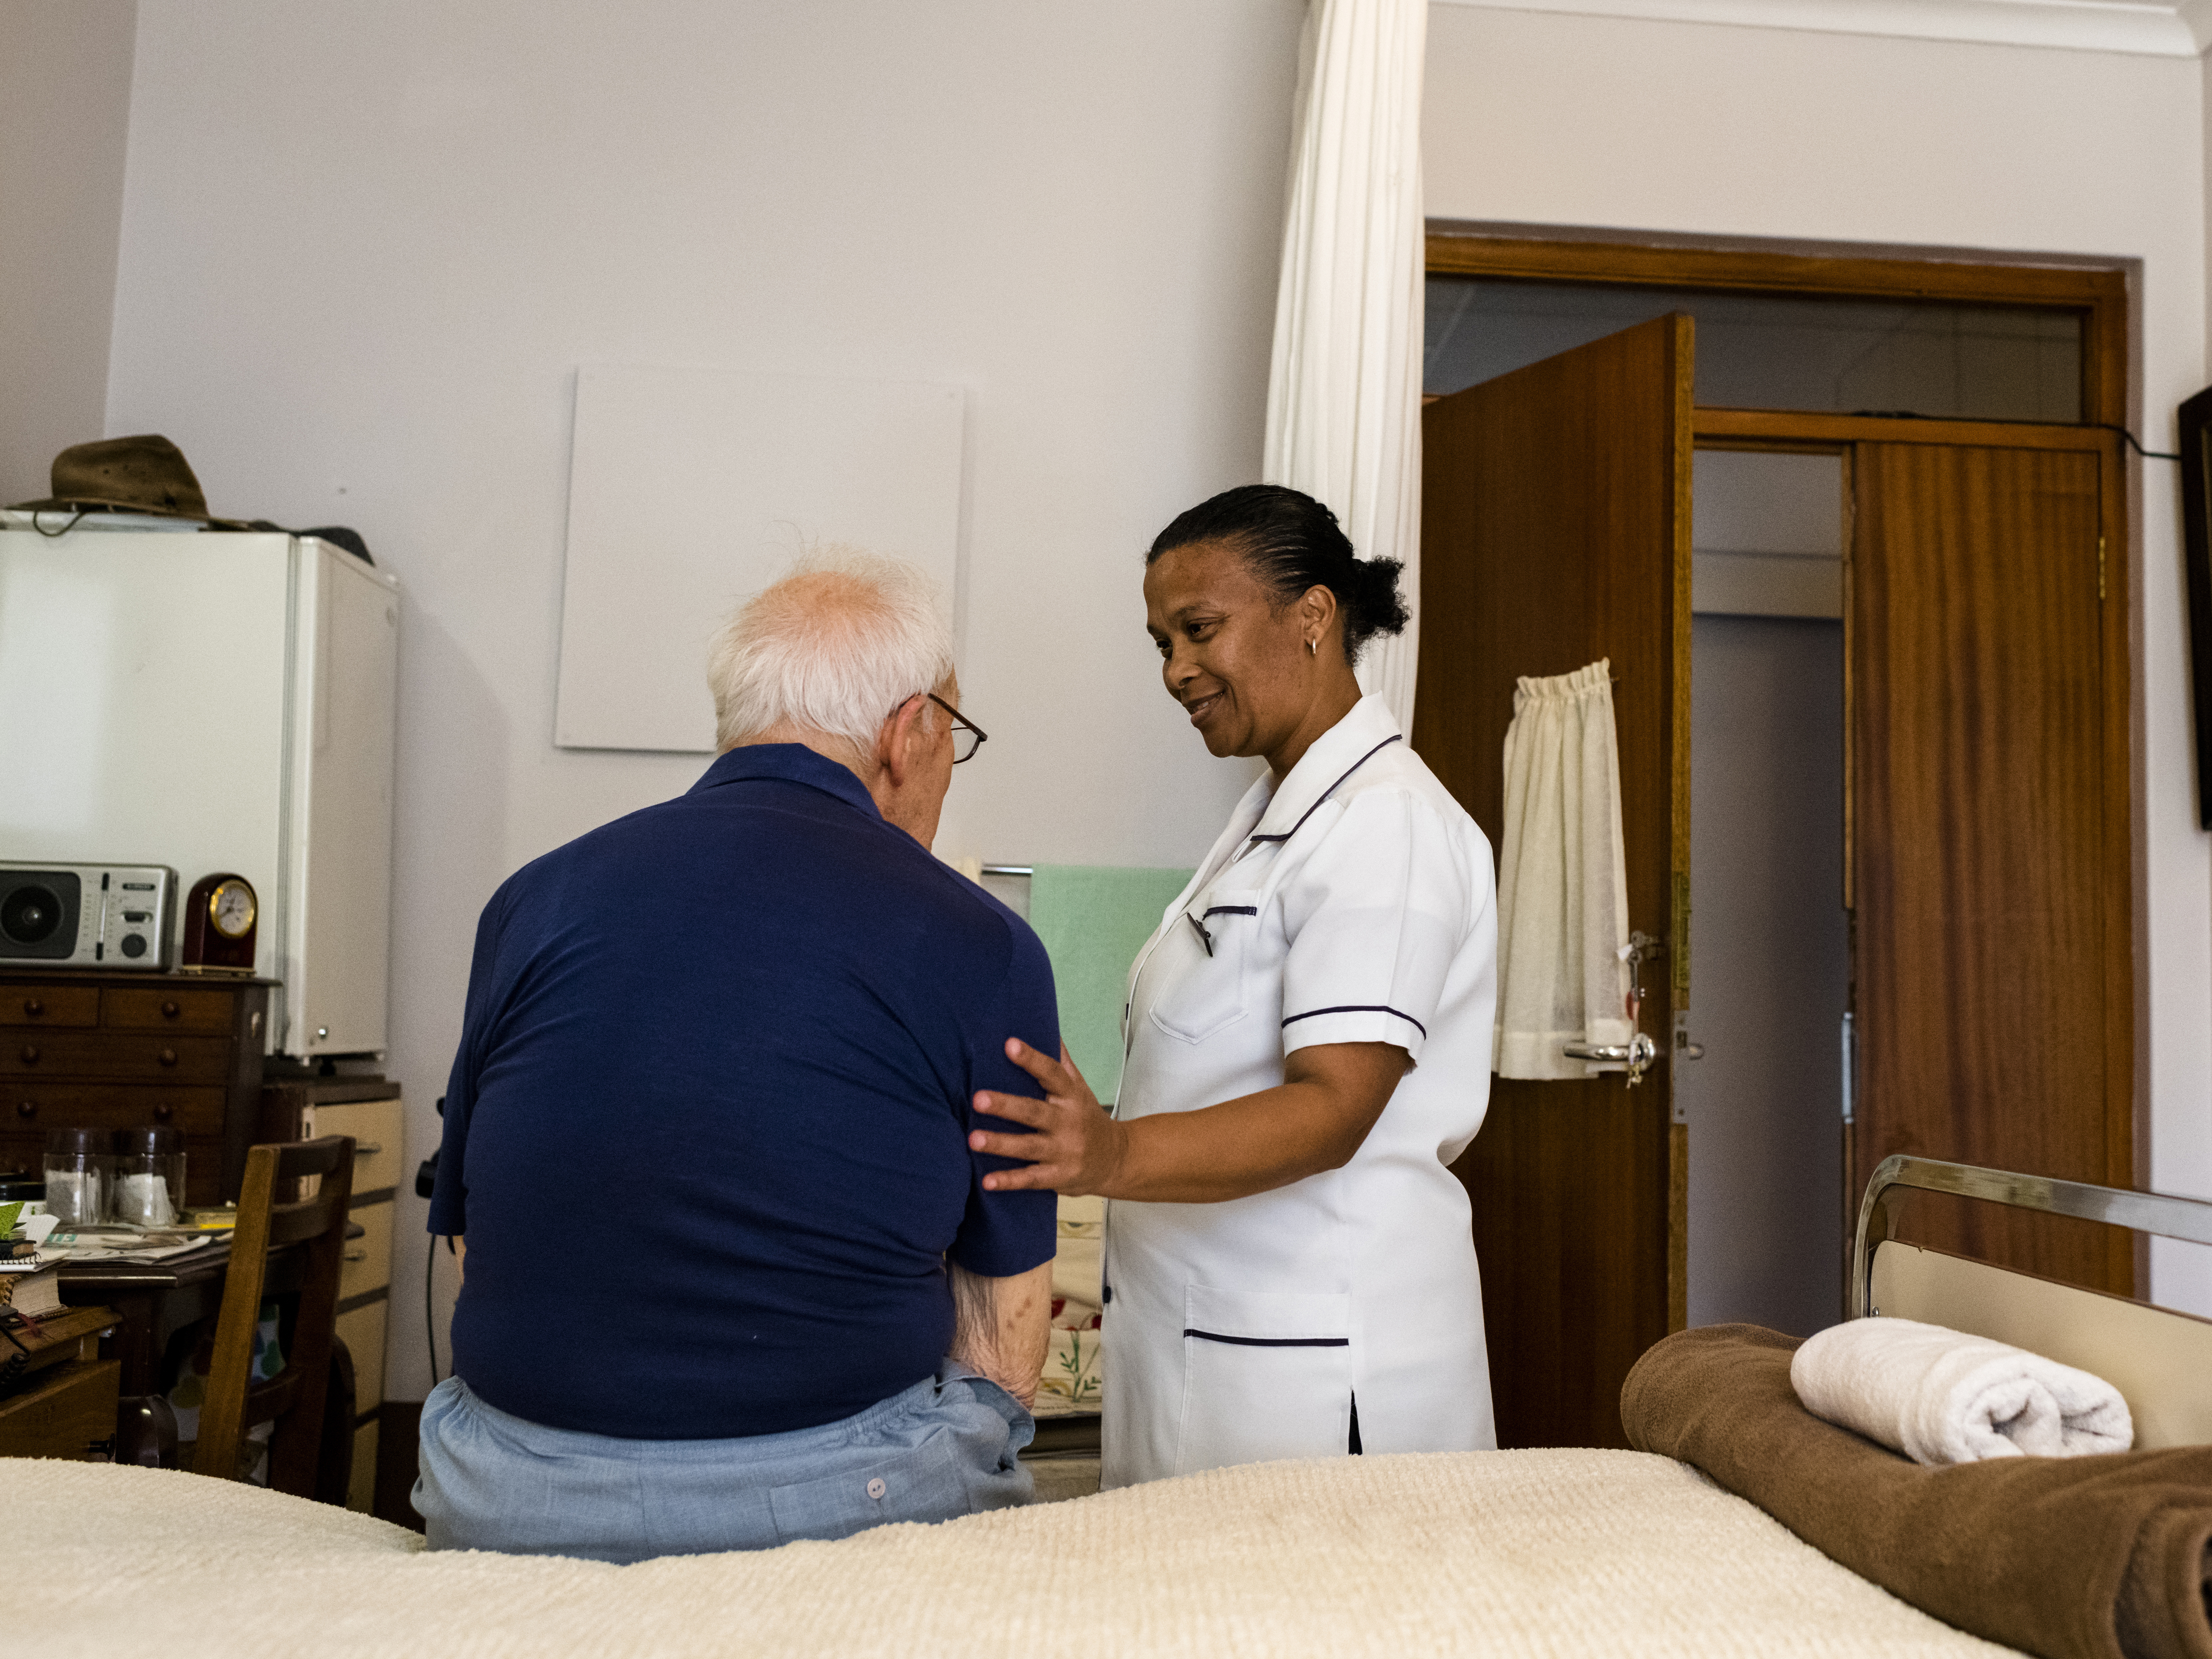 Nurse with an older resident at a nursing home.